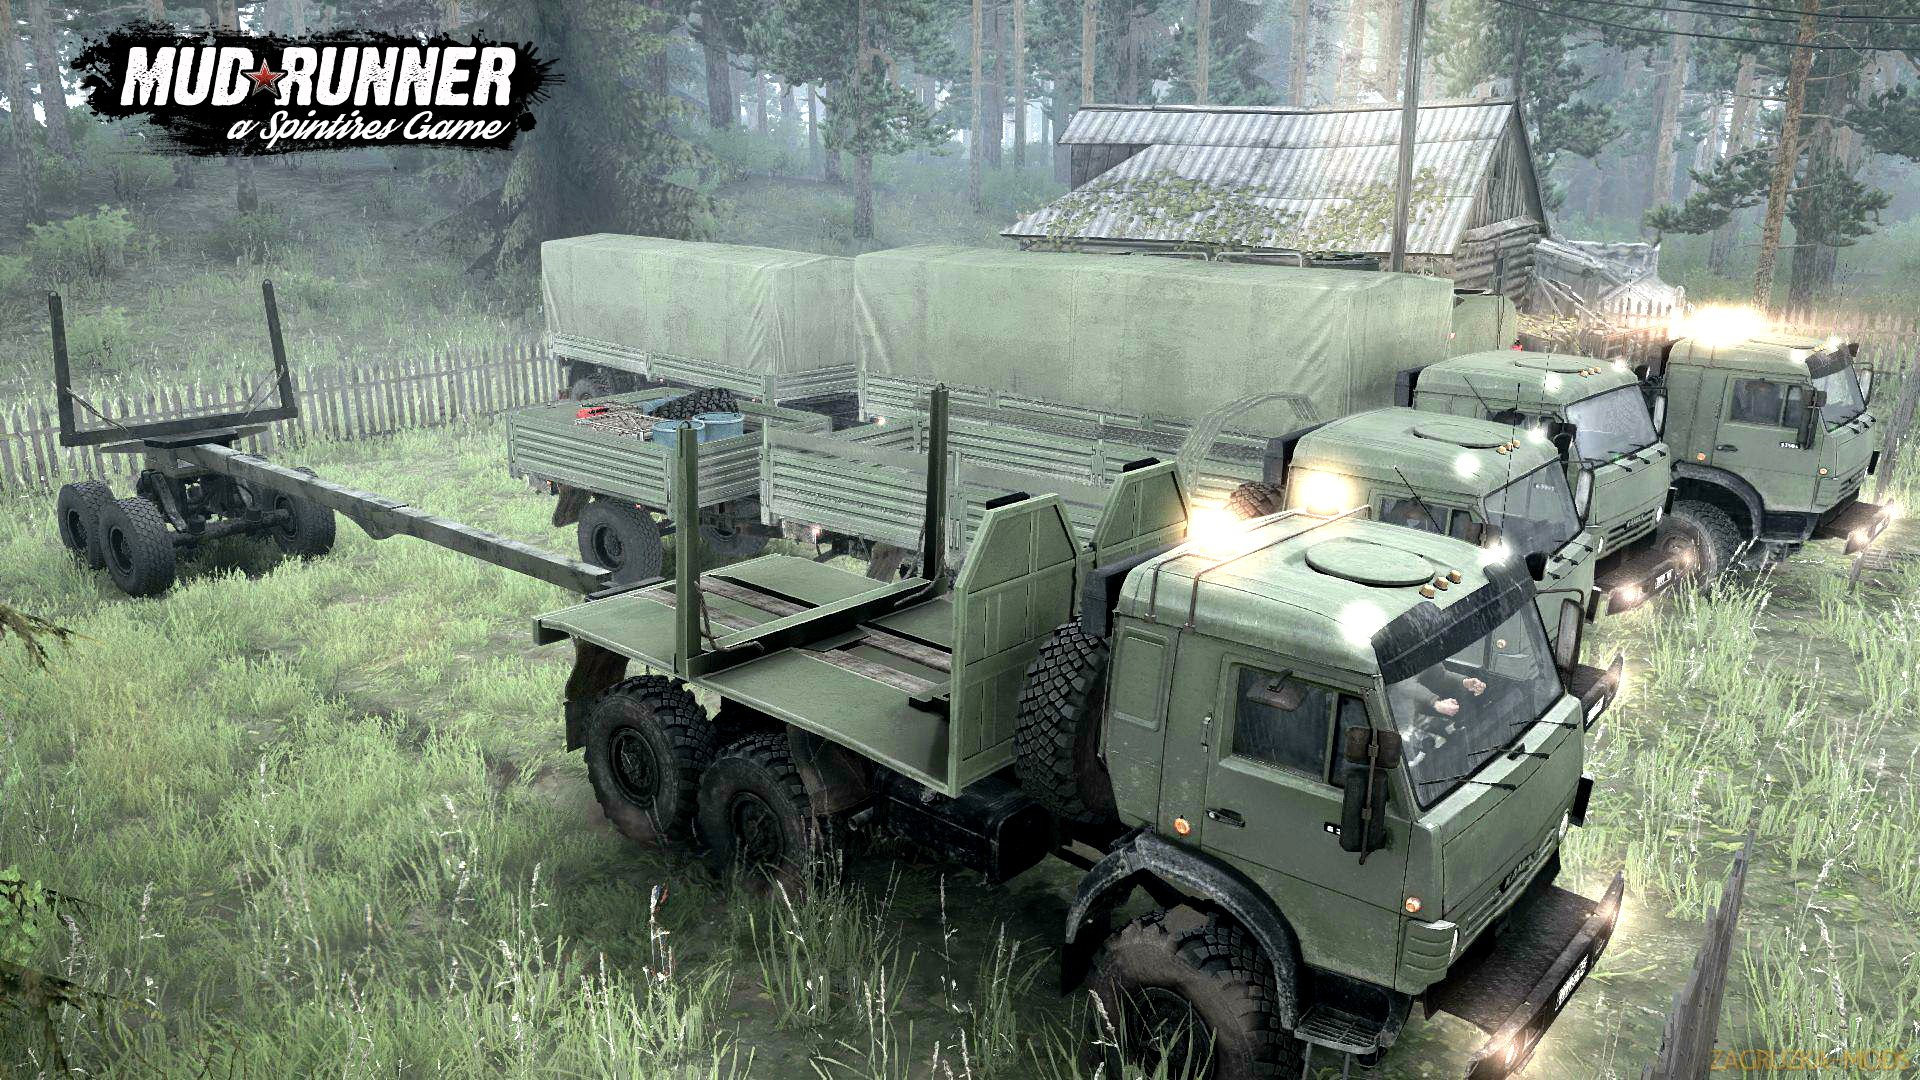 KamAZ Pack Trucks v1.0 (v07.11.17) for Spin Tires: MudRunner